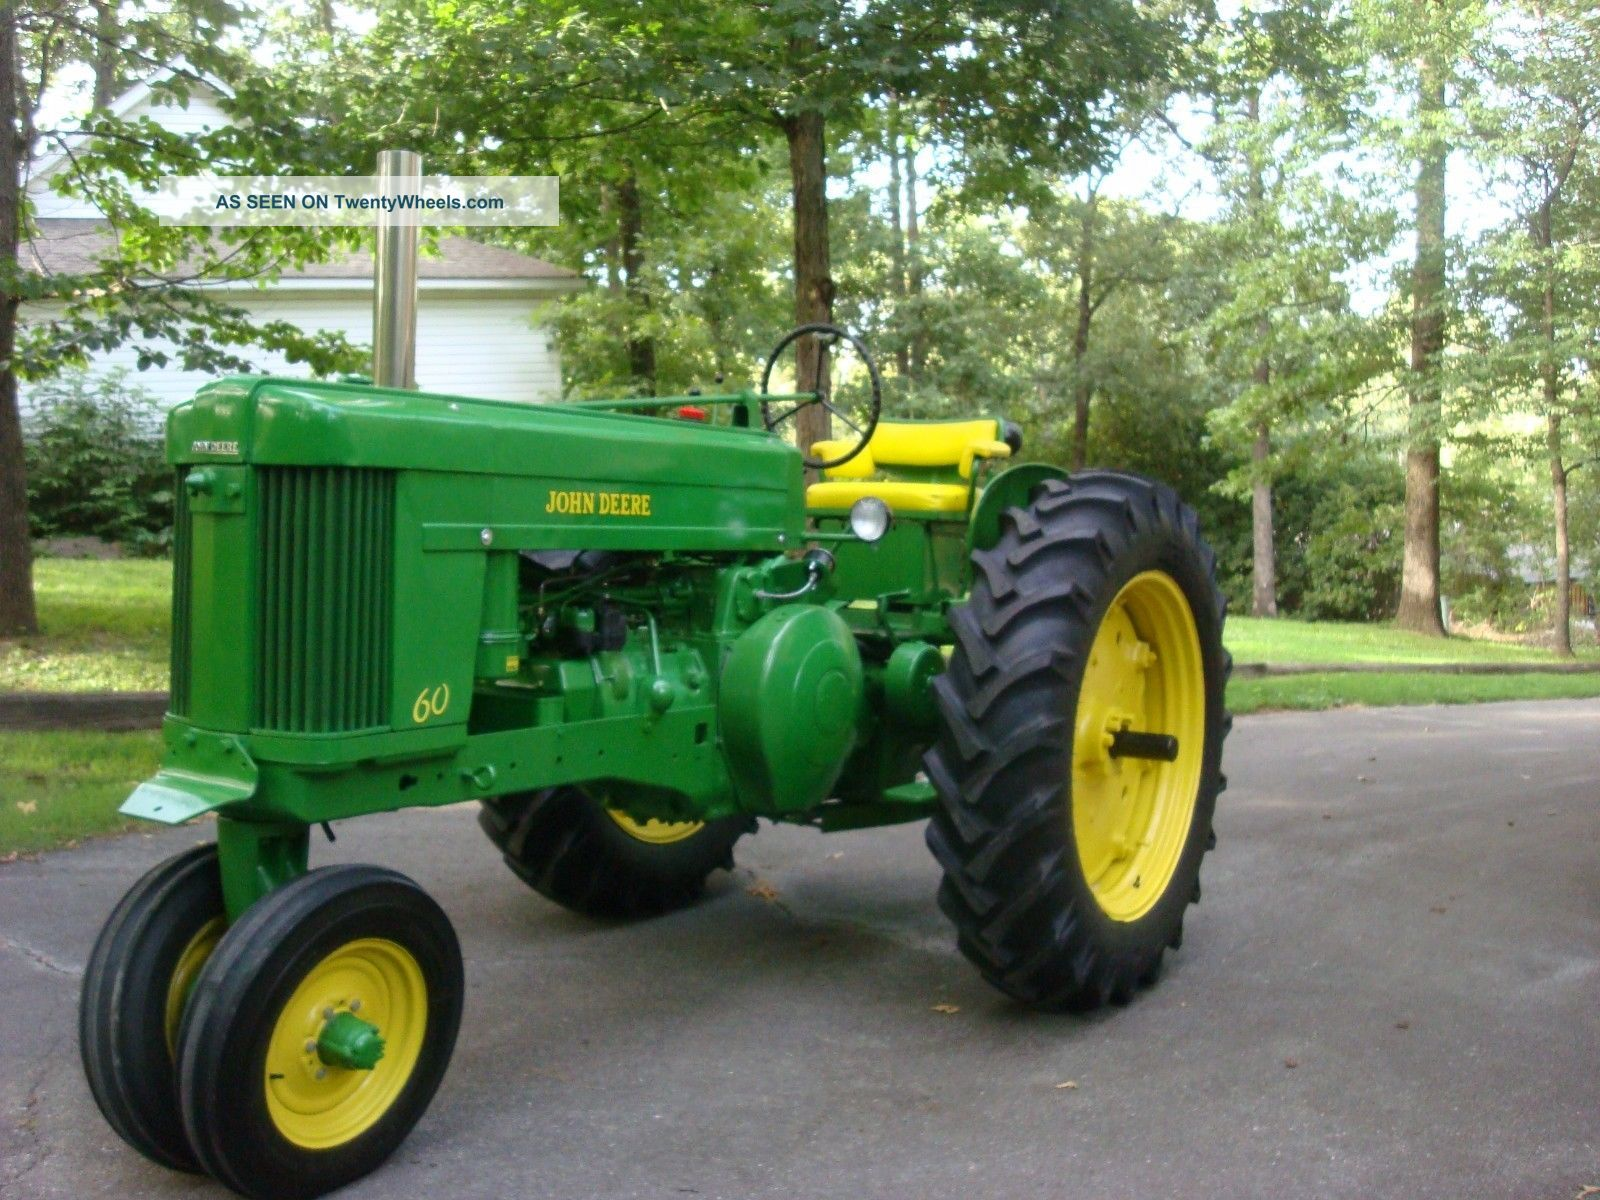 Pulling Tractor For Sale Craigslist >> Antique John Deere Tractors Ebay | Autos Post